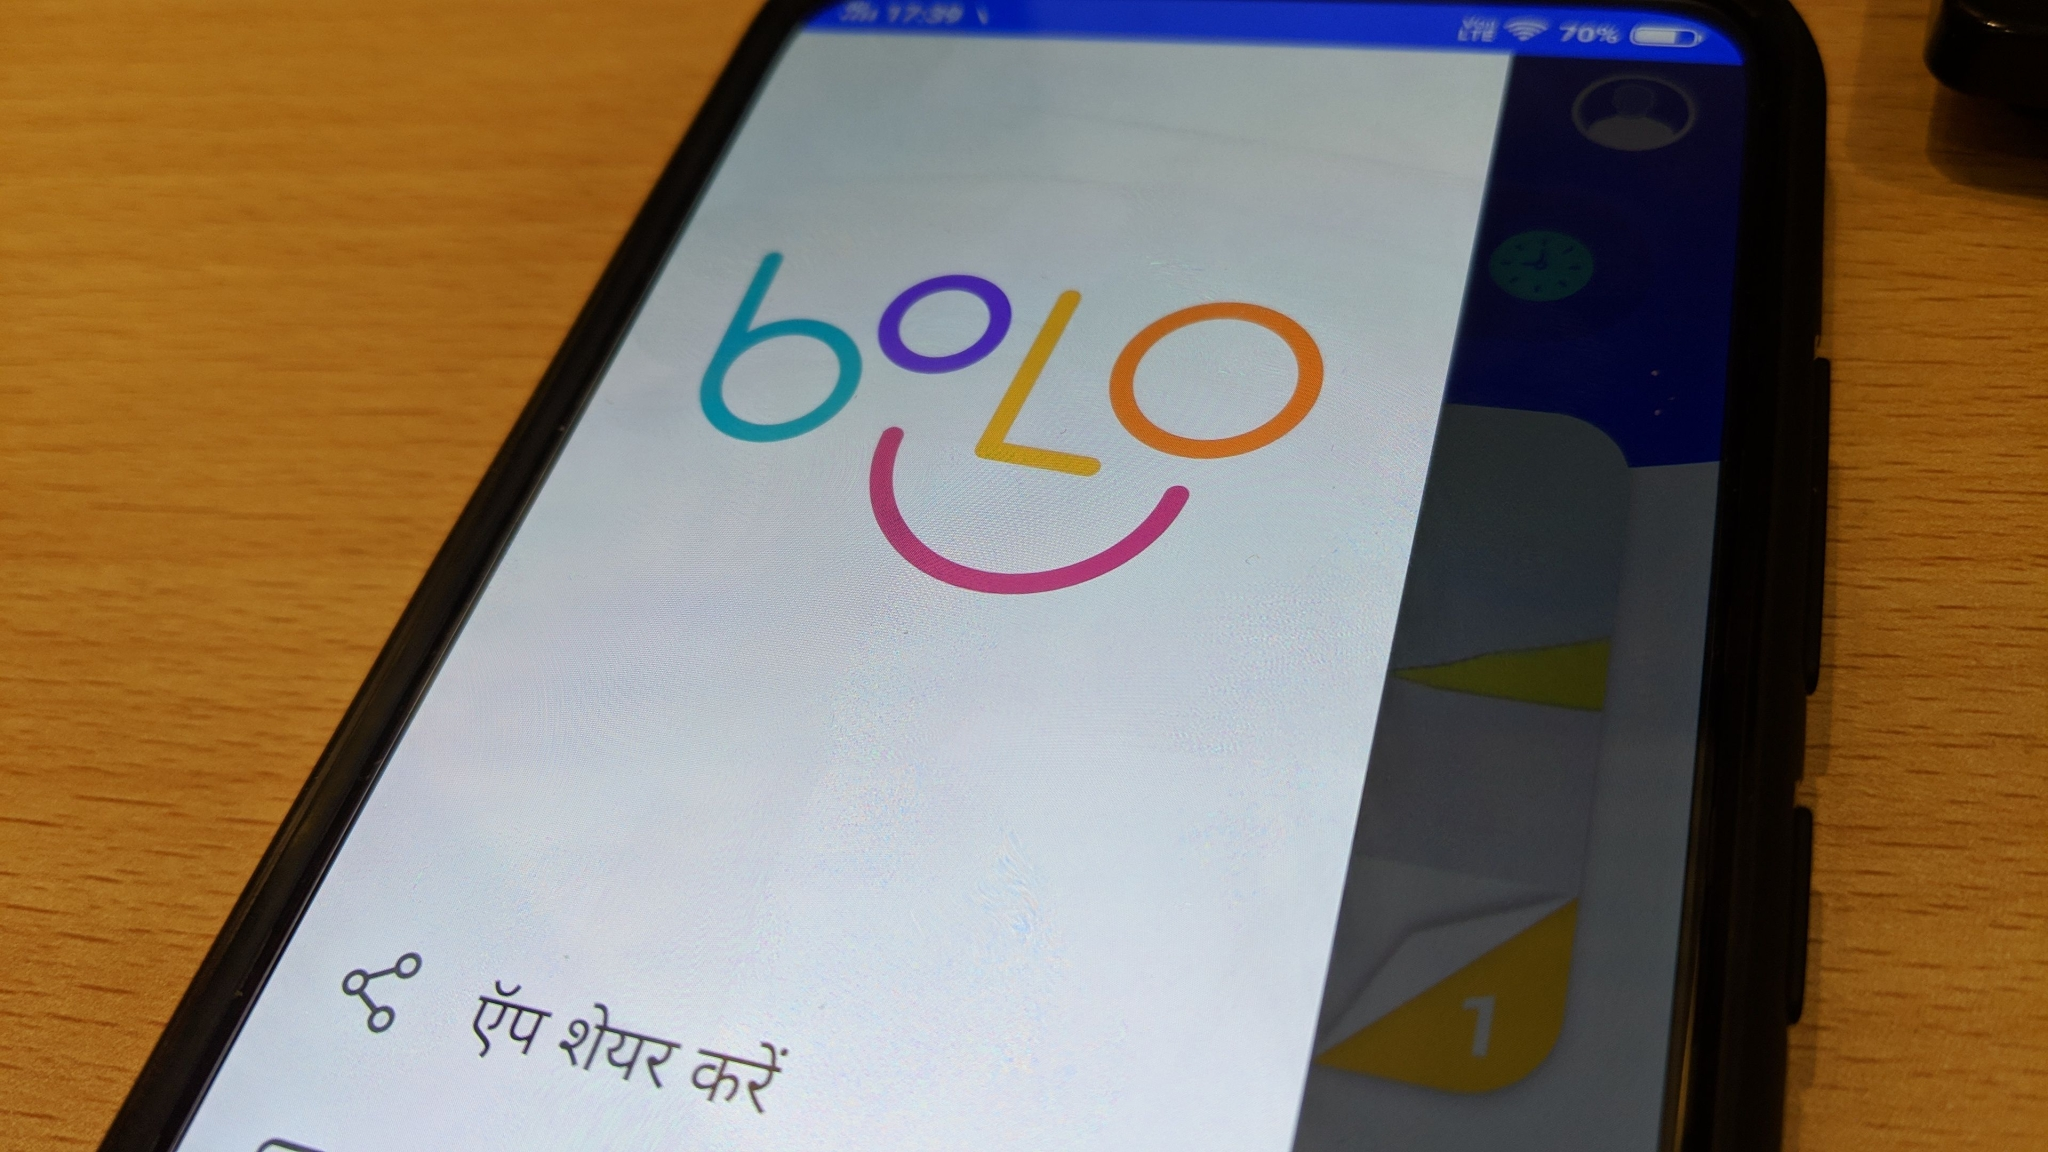 Google Bolo App For Kids Wants to Help With Hindi & English Skills